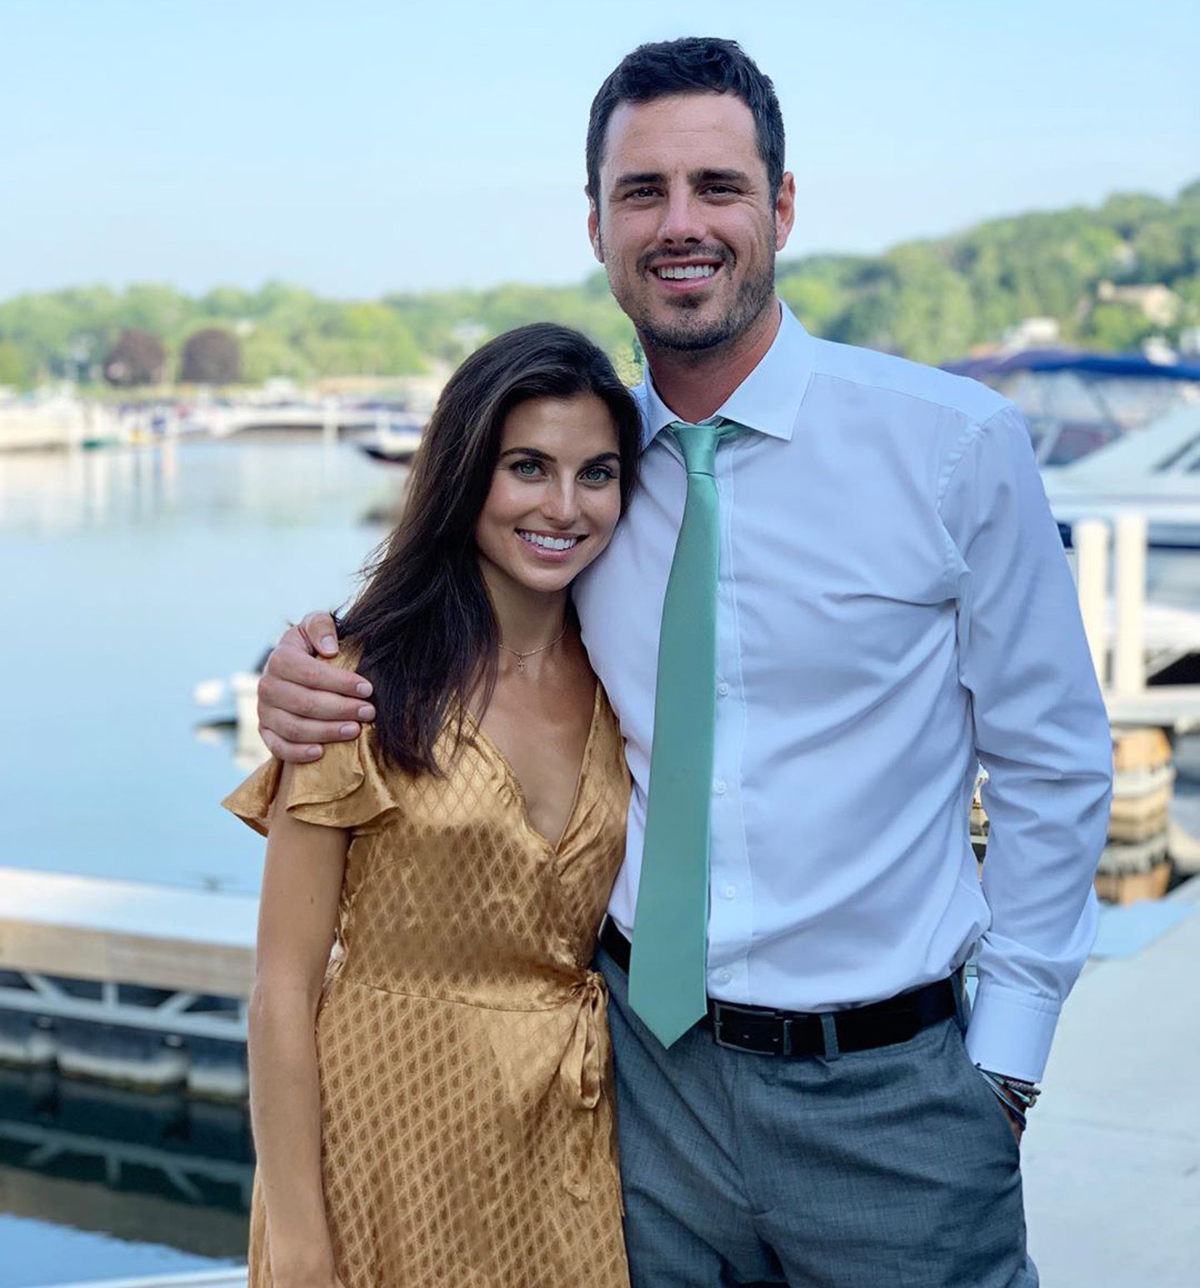 Ben Higgins on the Moment He Got Down on One Knee & 'Shocked'Girlfriend Jessica Clark with Proposal